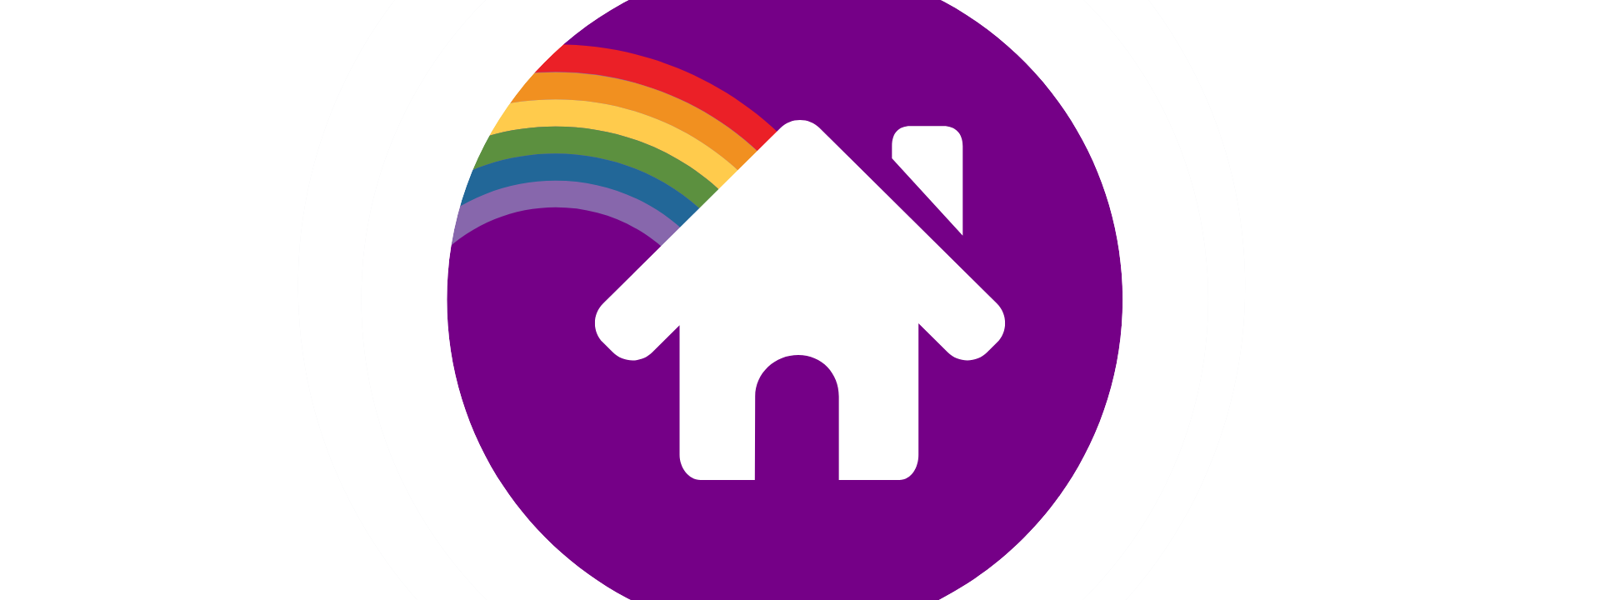 akt supports lgbtq+ young people aged 16-25 in the uk who are facing or experiencing homelessness or living in a hostile environment.